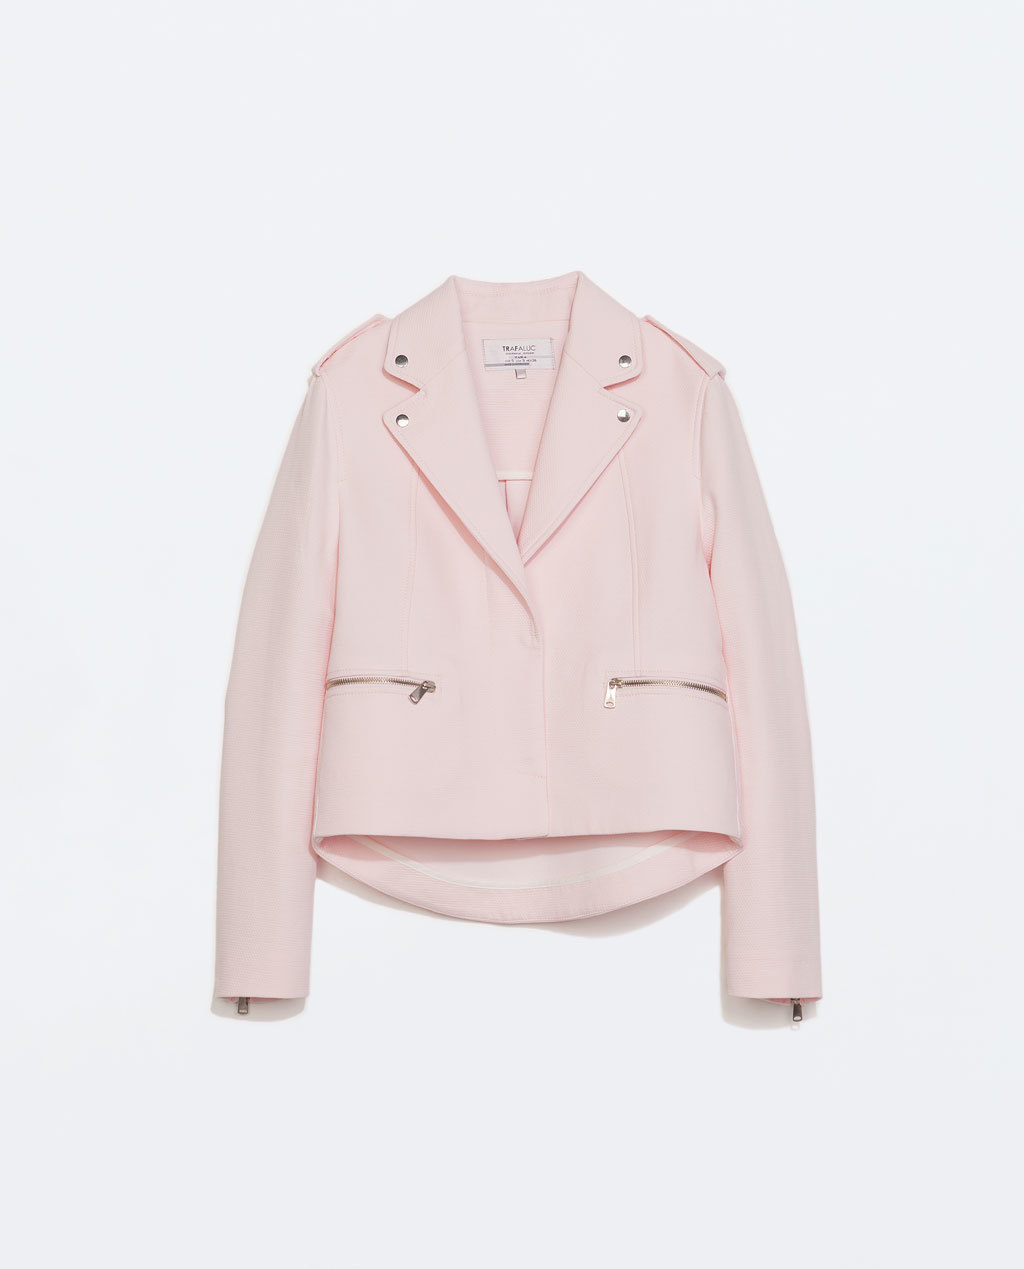 Structured Jacket - pattern: plain; style: biker; collar: asymmetric biker; predominant colour: blush; occasions: casual, evening, creative work; length: standard; fit: straight cut (boxy); fibres: cotton - 100%; shoulder detail: discreet epaulette; sleeve length: long sleeve; sleeve style: standard; texture group: cotton feel fabrics; collar break: medium; pattern type: fabric; trends: sorbet shades; season: s/s 2014